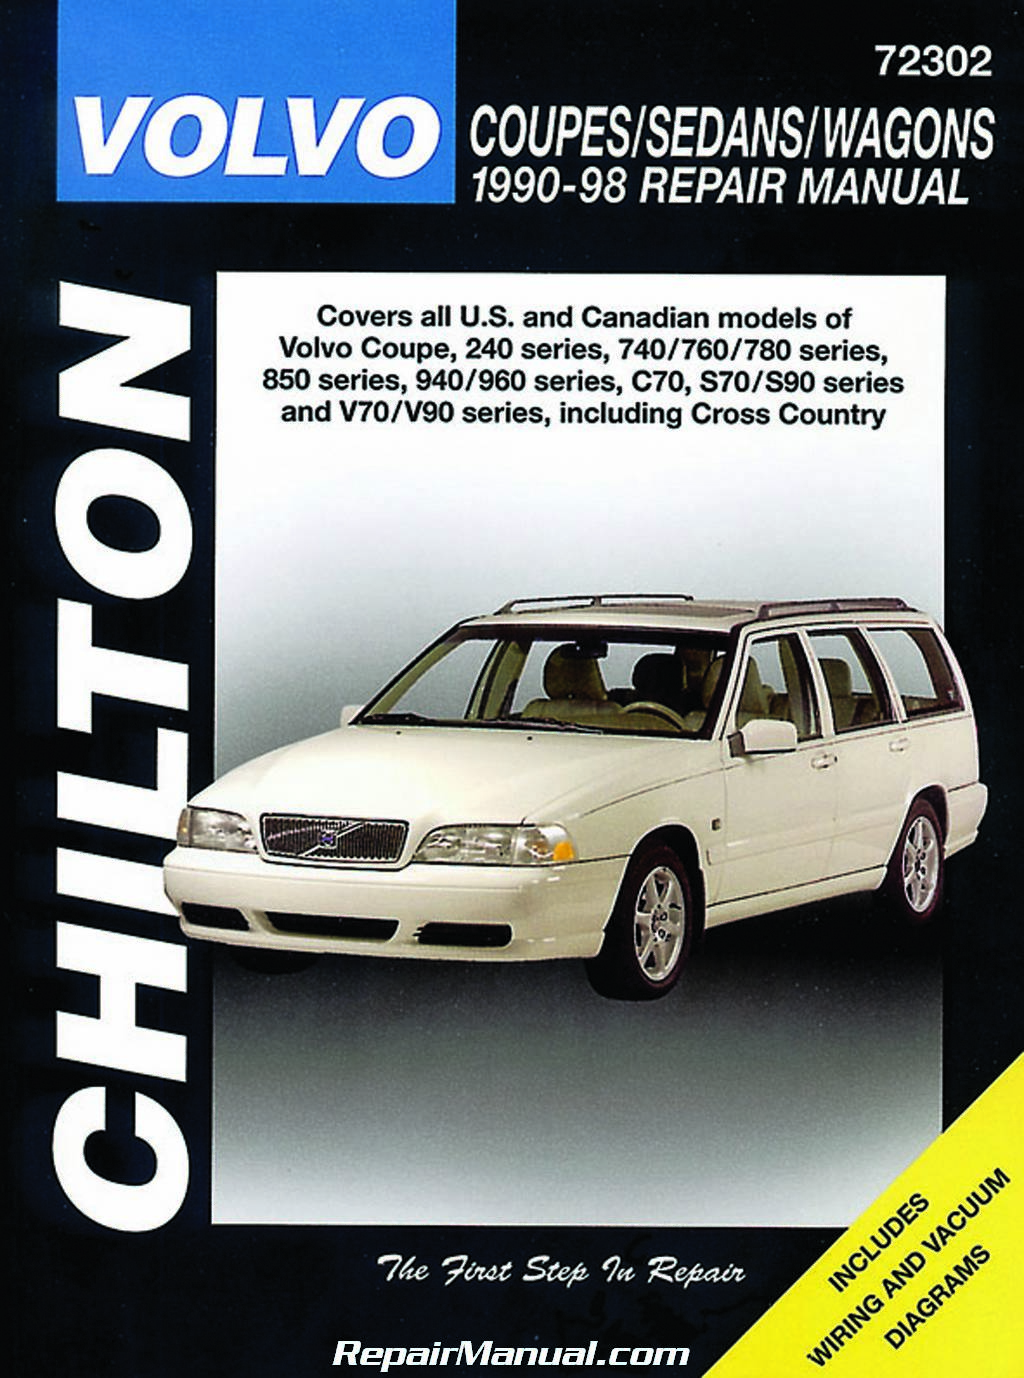 Volvo V70 Cross Country Owners Manual 2001 Fuse Box Diagram Chilton Coupes Sedans Wagons 1990 1998 Repair Rh Repairmanual Com 2004 Xc70